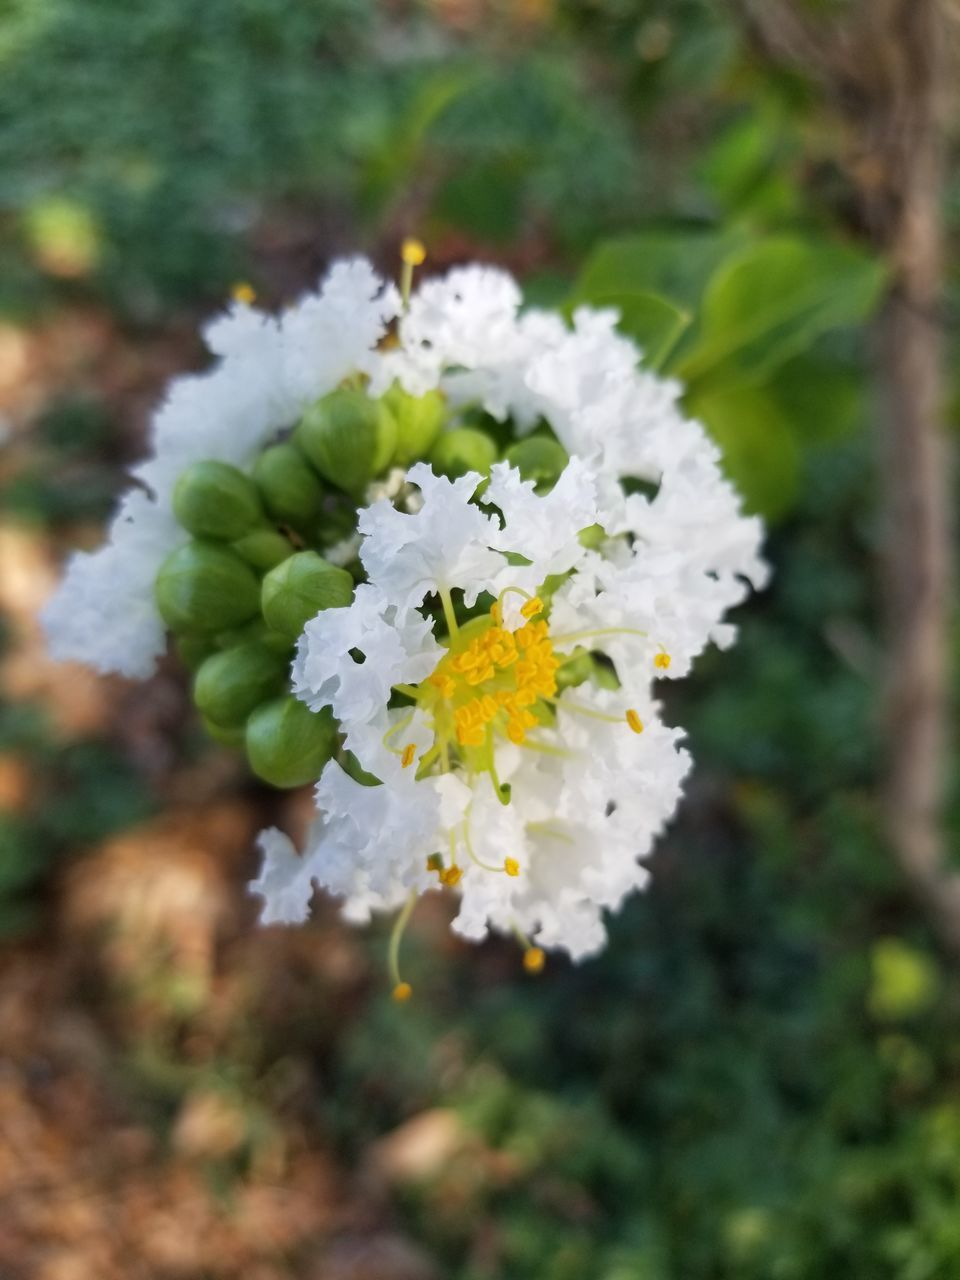 plant, flower, growth, beauty in nature, freshness, flowering plant, vulnerability, fragility, close-up, nature, white color, day, focus on foreground, flower head, petal, selective focus, no people, inflorescence, outdoors, green color, pollen, cherry blossom